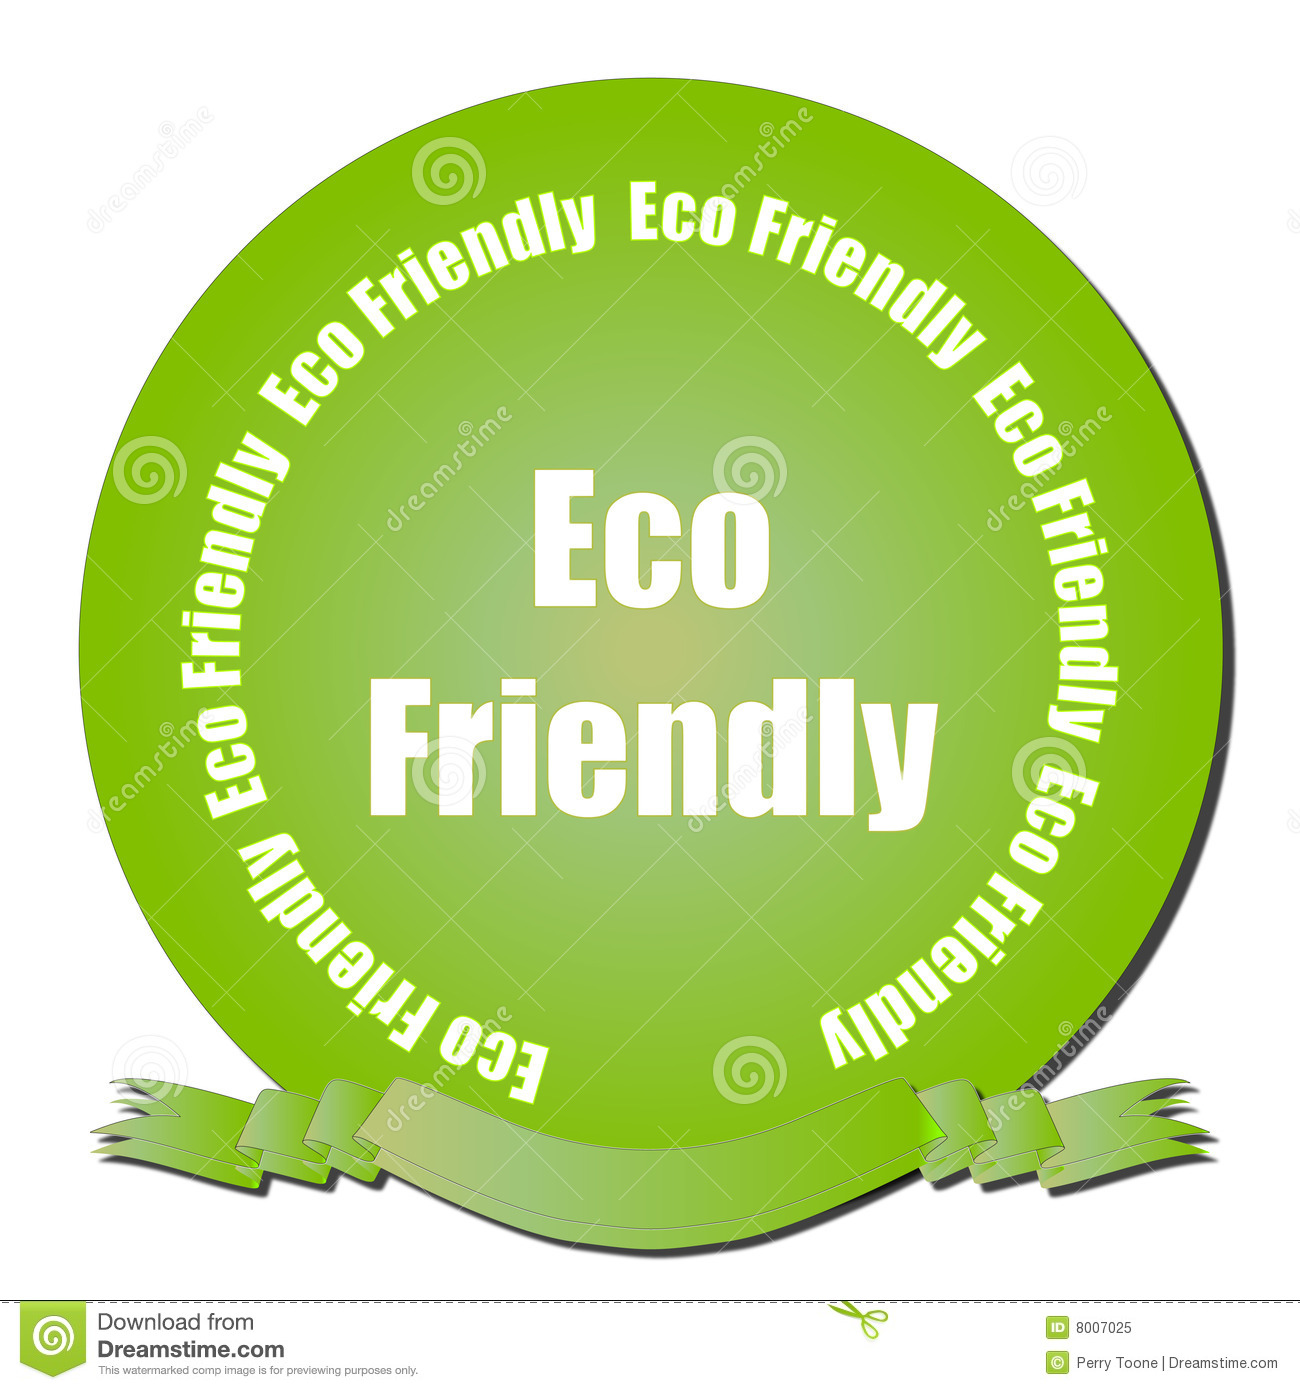 online dating environmentally friendly Make a difference by joining a 'green' club here a home based green business that enables you to convert current household.